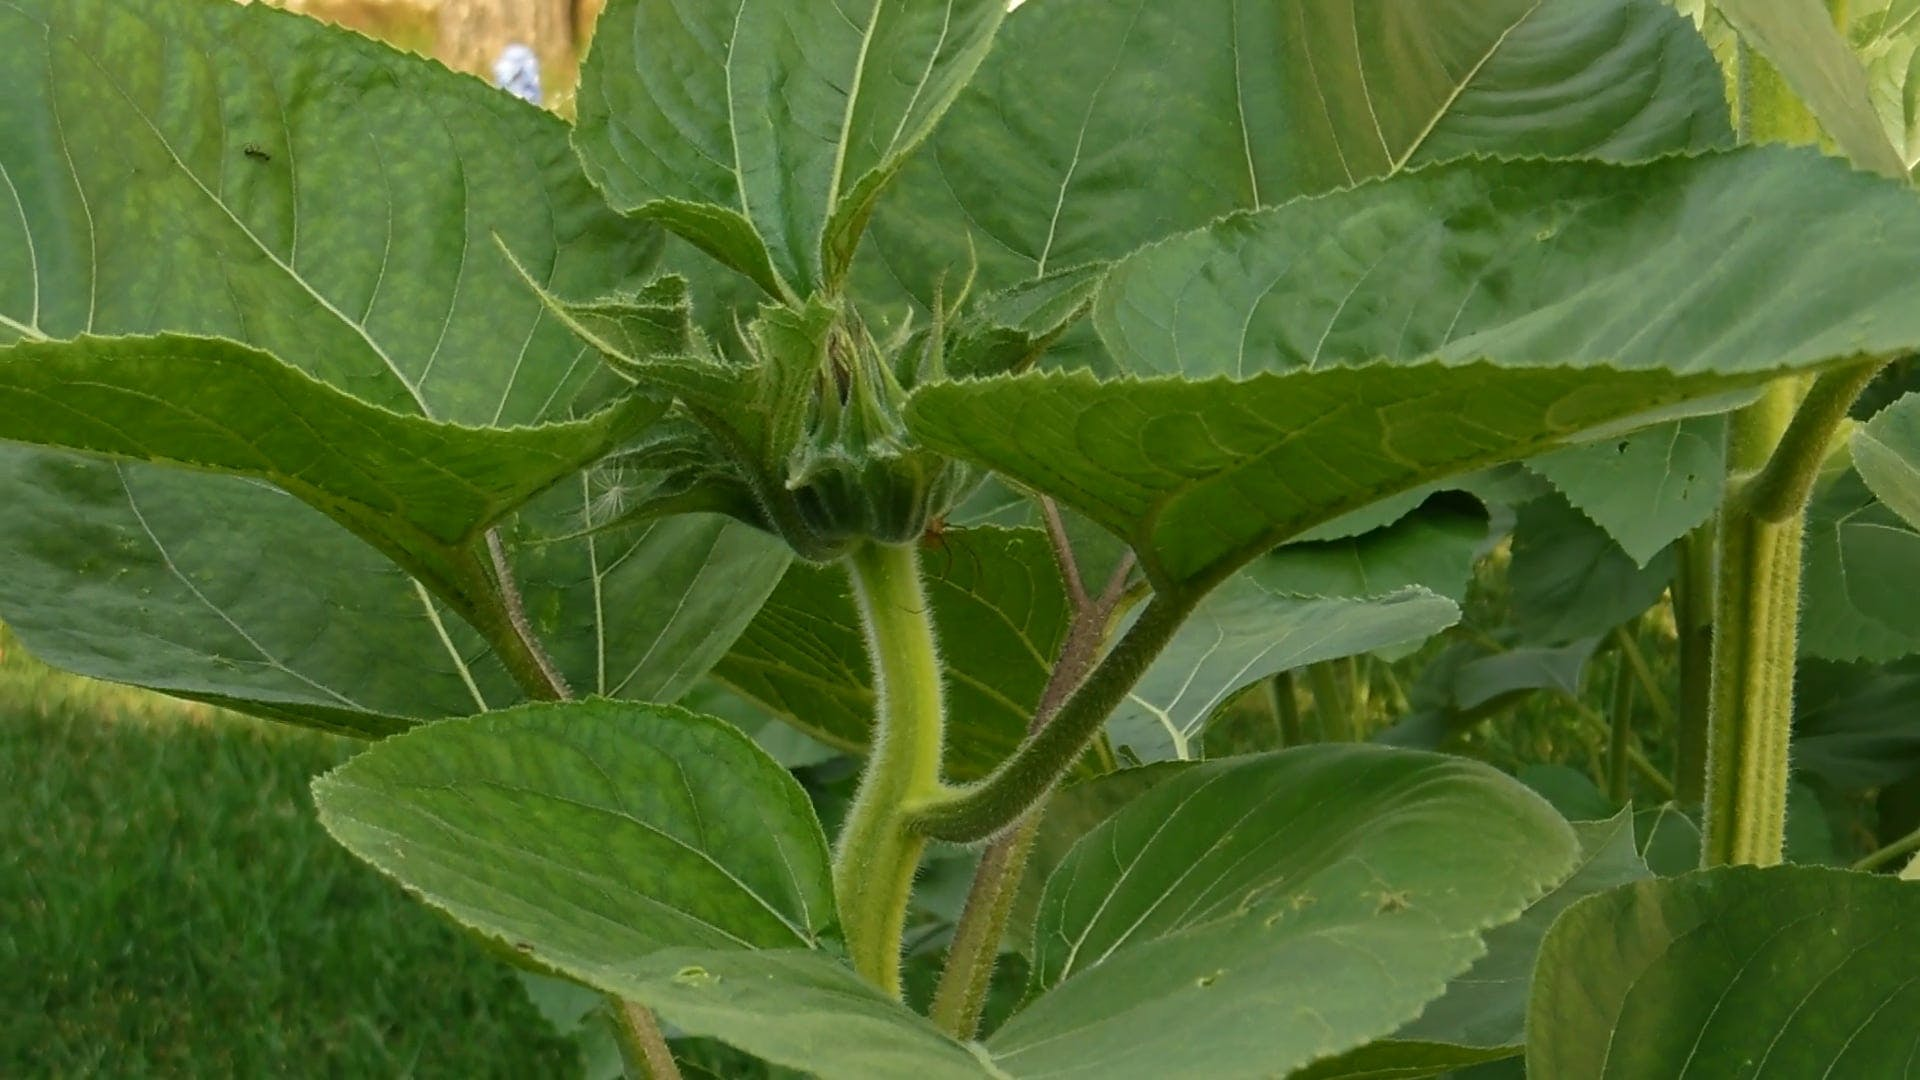 The Sunflower Bud